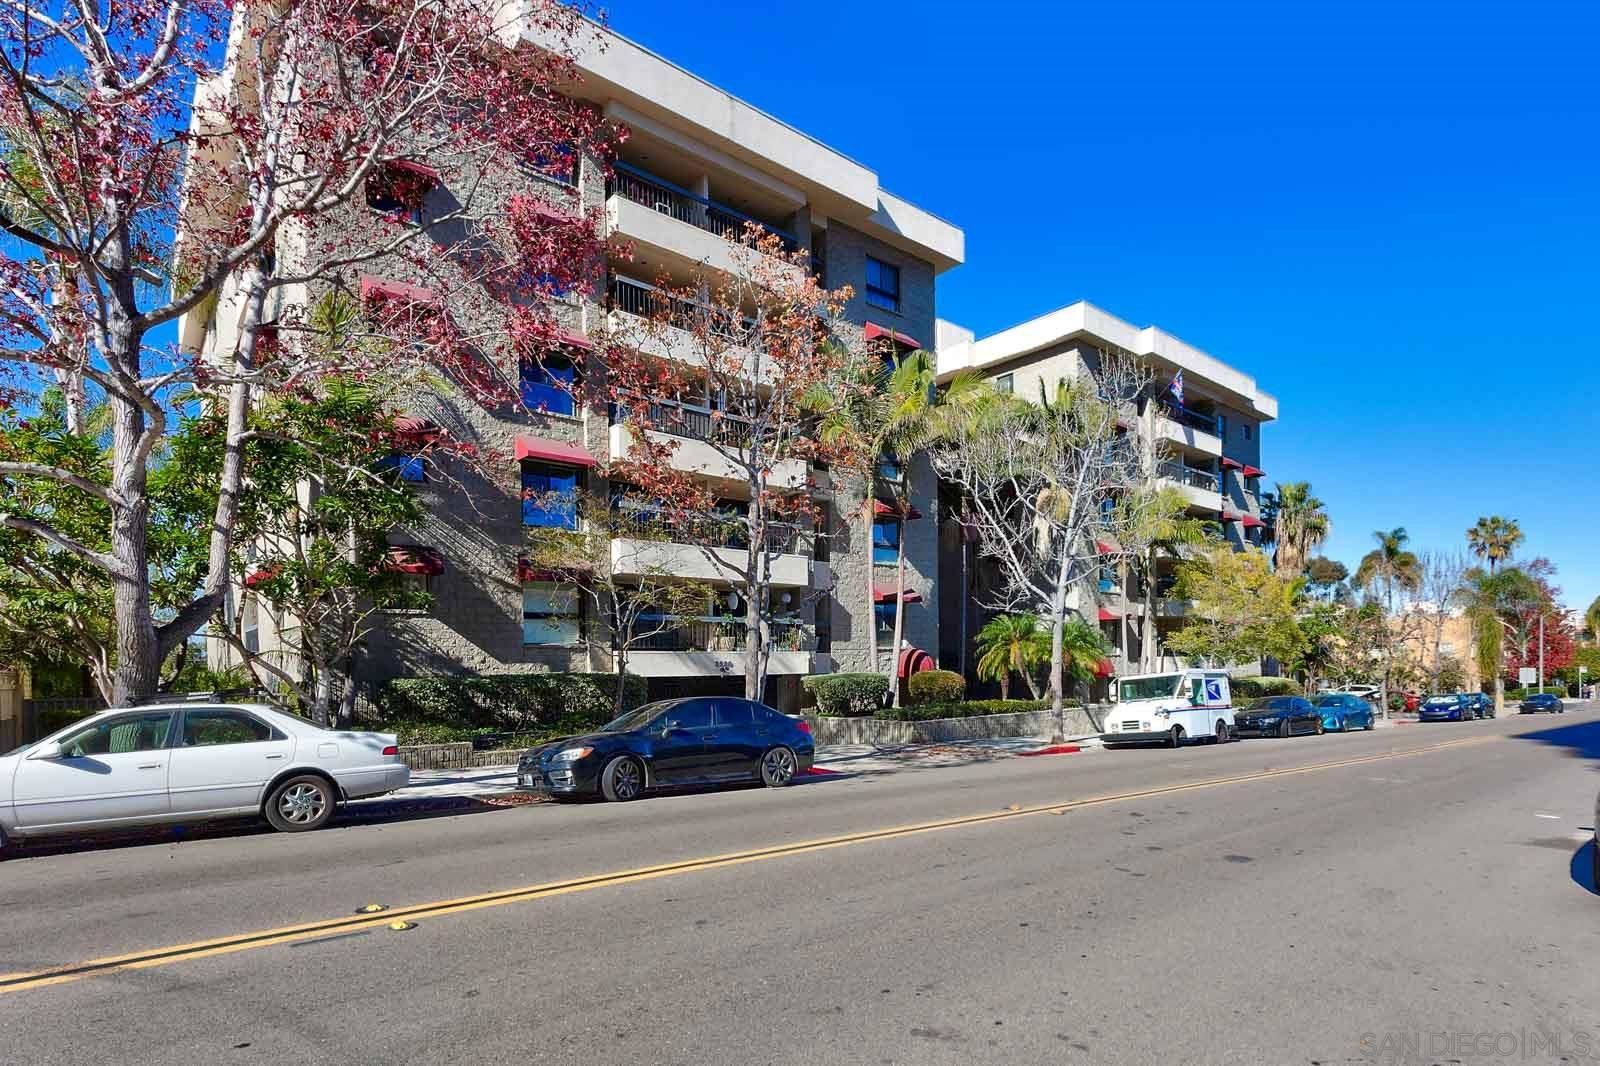 Photo of 3560 1st Ave #16, San Diego, CA 92103 (MLS # 210001120)